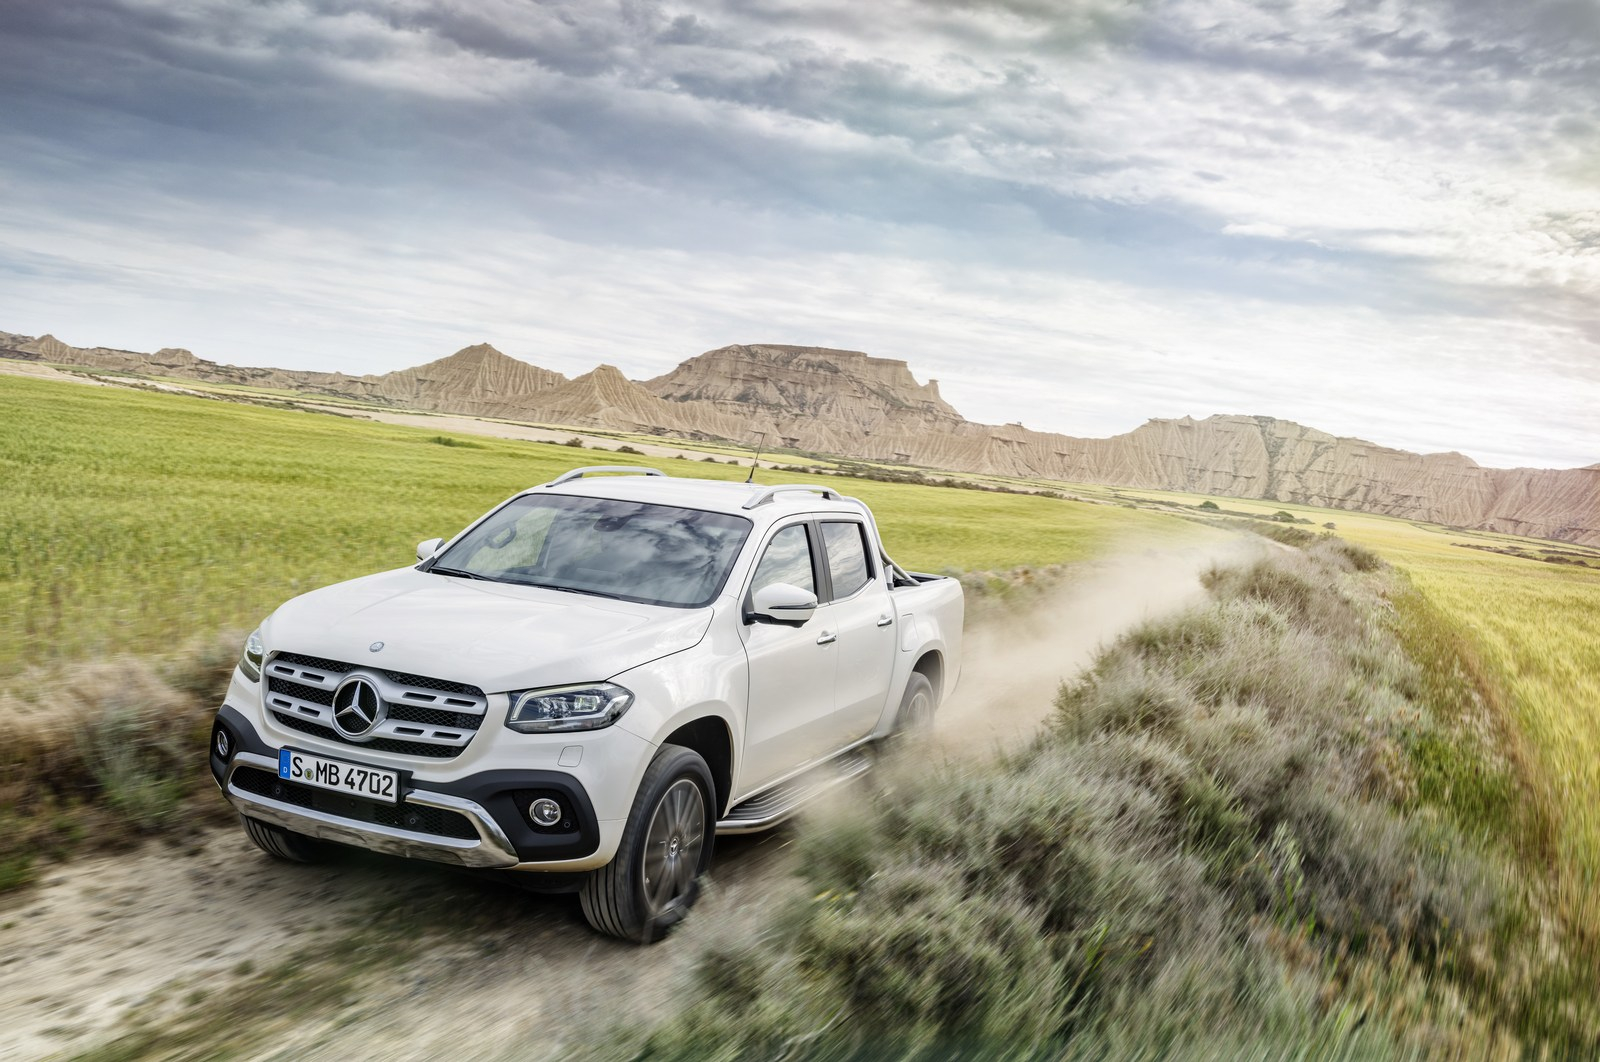 Mercedes-Benz X-Klasse – Exterieur, Beringweiß metallic, Ausstattungslinie POWER   Mercedes-Benz X-Class – Exterior, bering white metallic, design and equipment line POWER